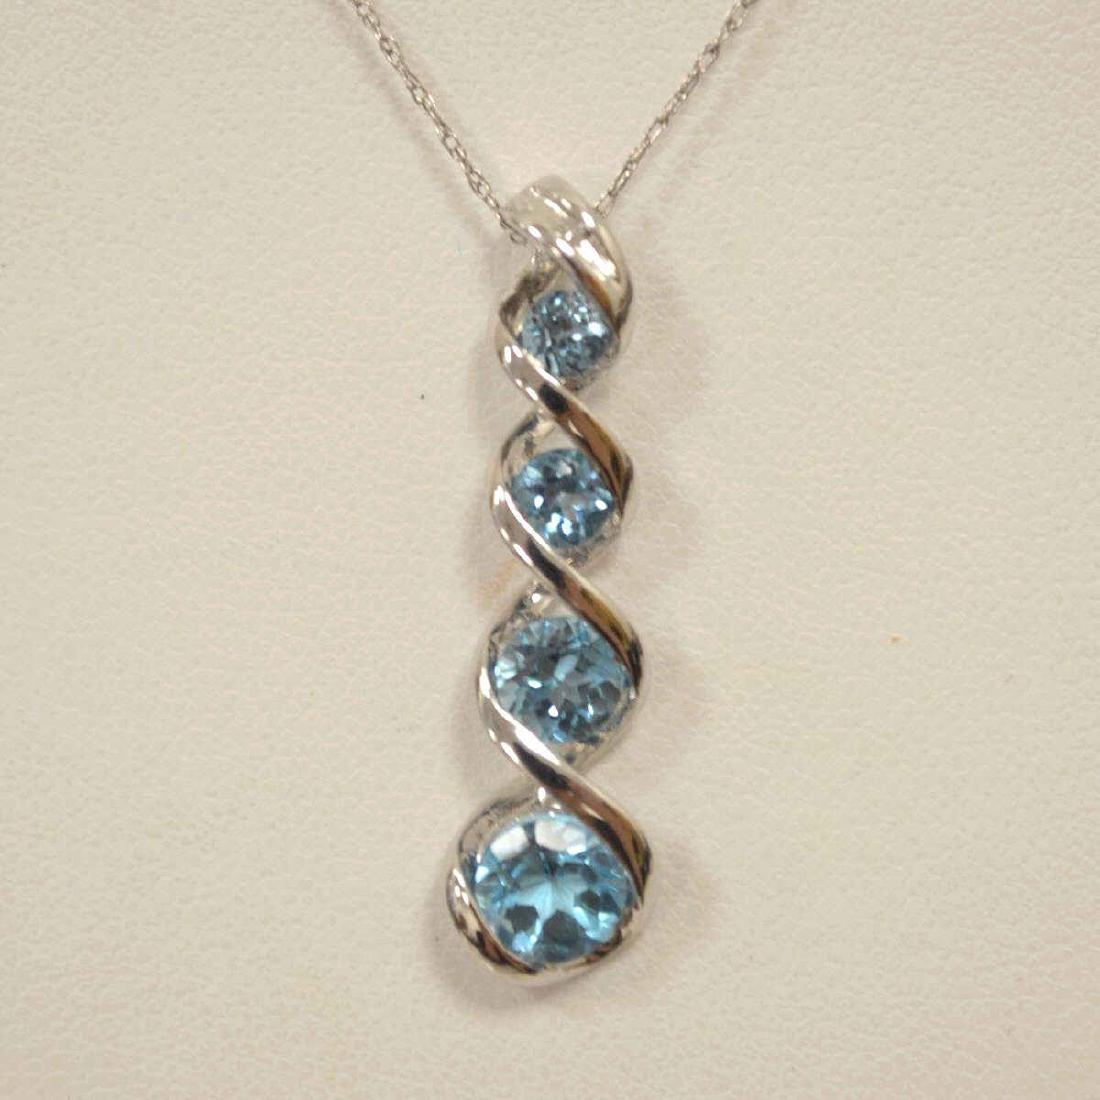 10kt white gold blue topaz necklace - 3